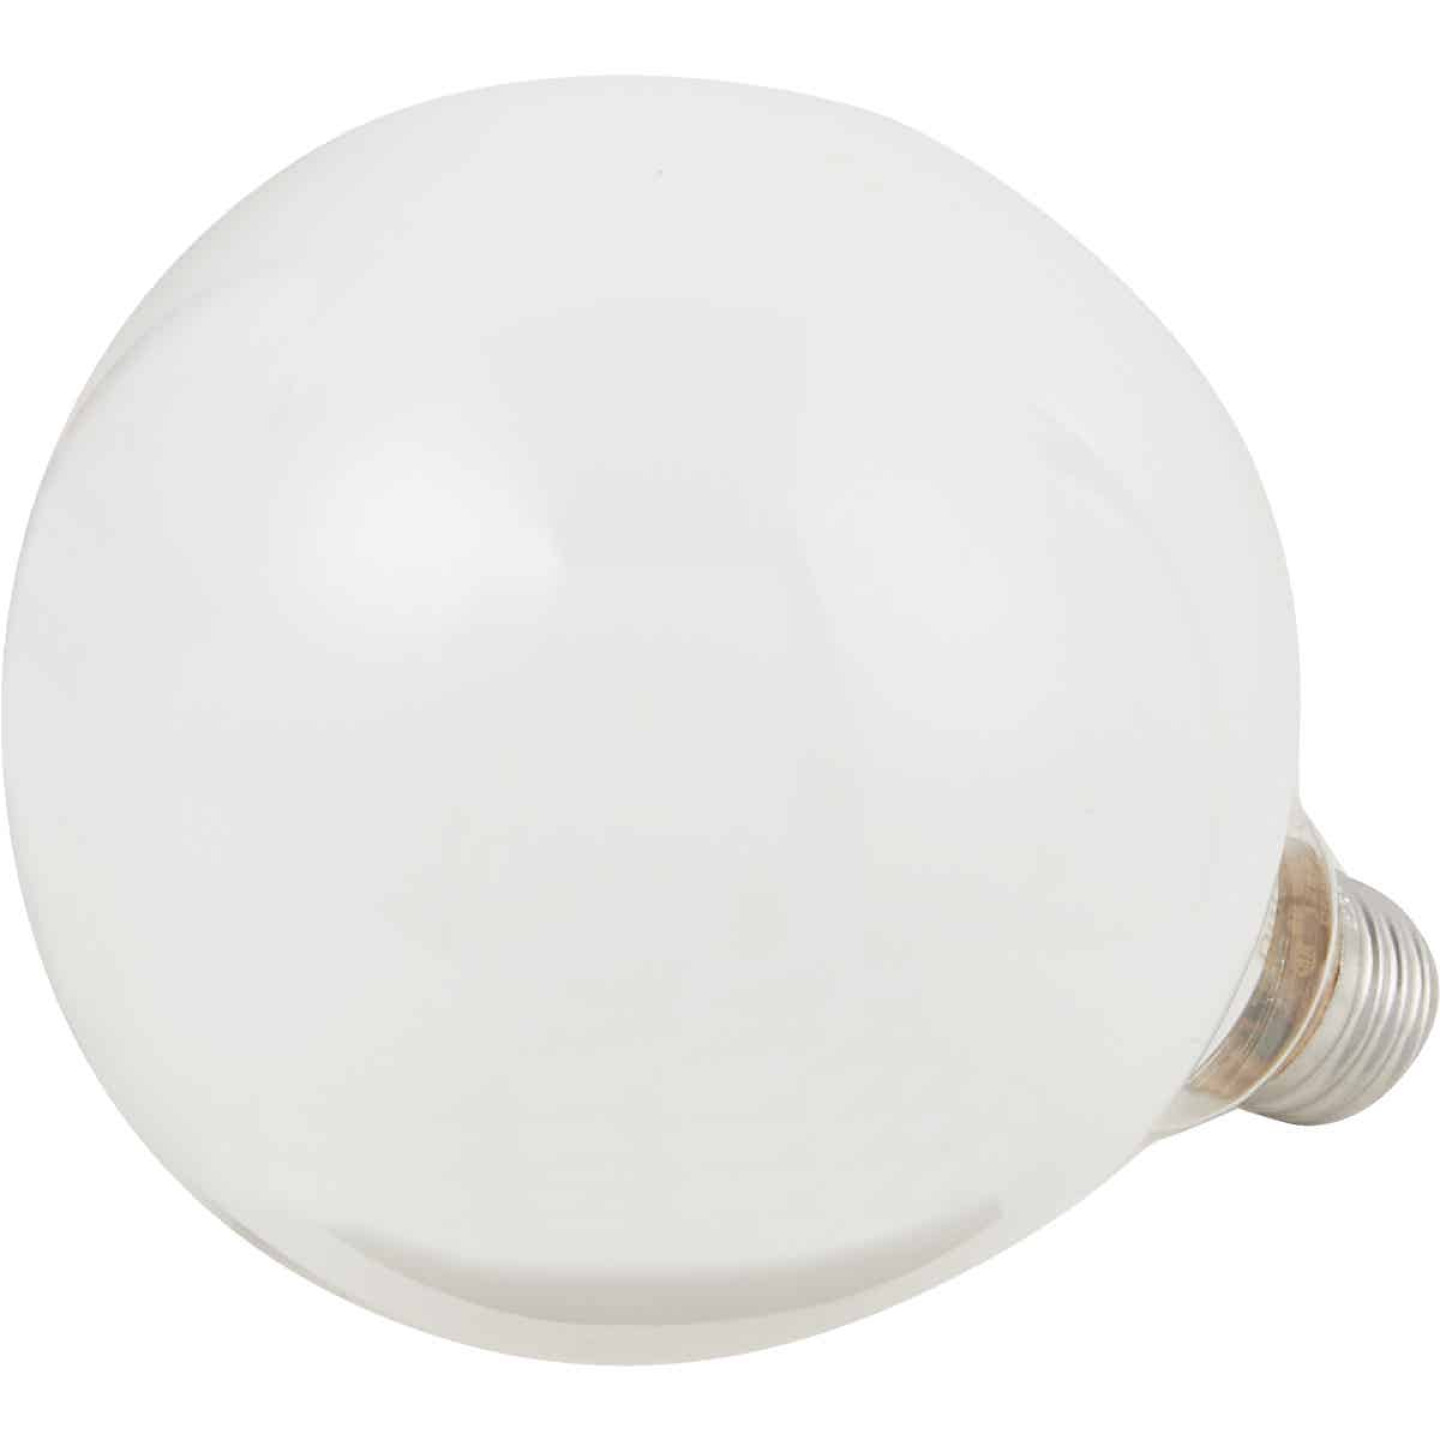 Philips DuraMax 60W Frosted Soft White Medium Base G40 Incandescent Globe Light Bulb Image 3